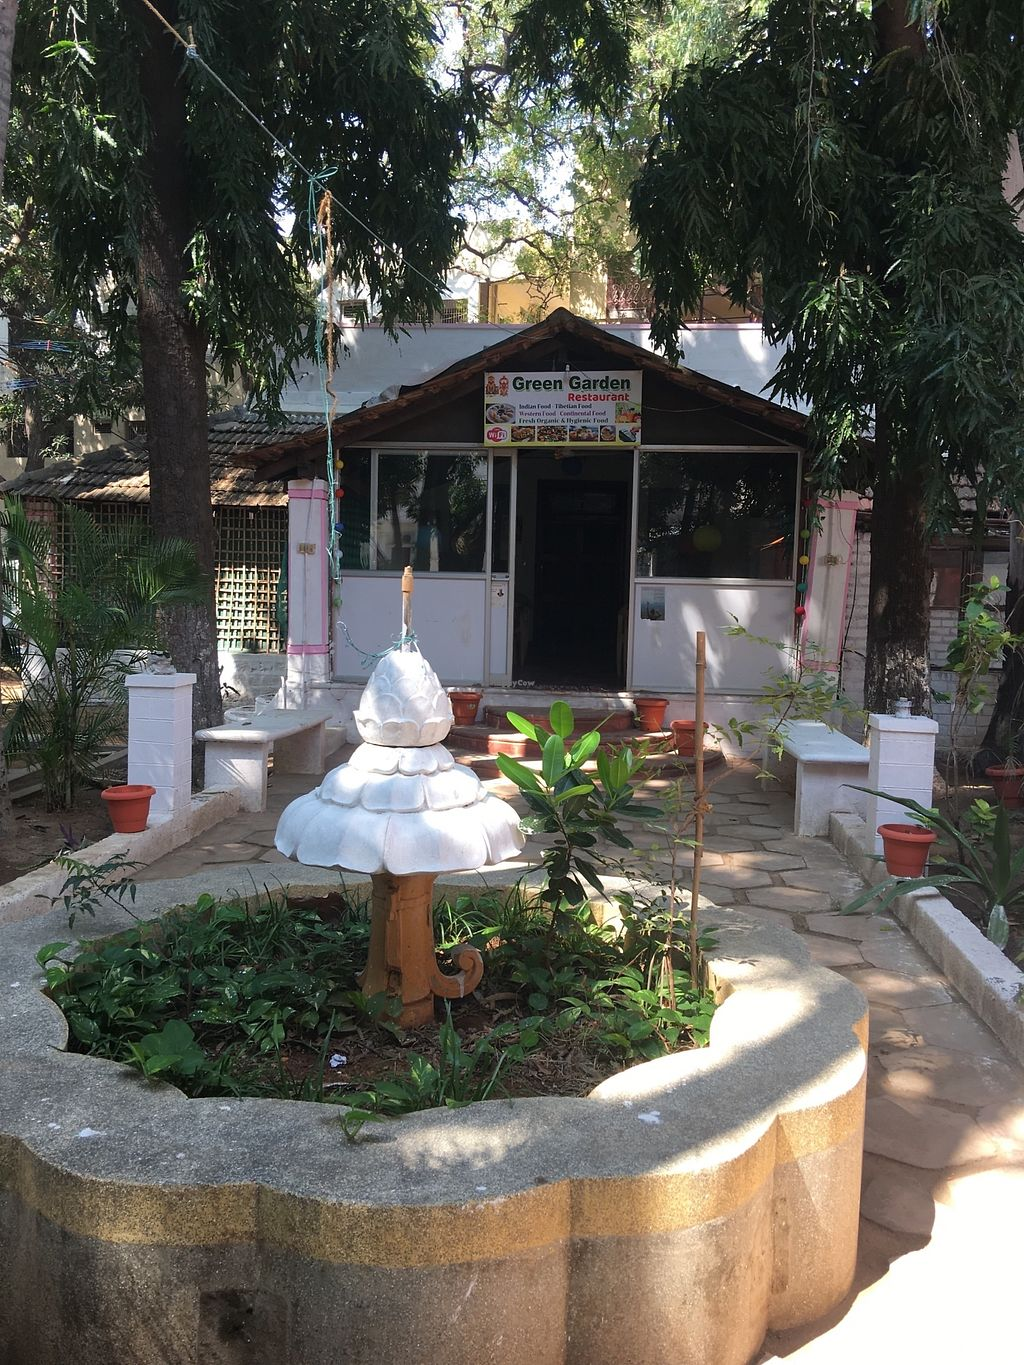 """Photo of Green Garden  by <a href=""""/members/profile/DevotedToMahadev"""">DevotedToMahadev</a> <br/>Entrance <br/> February 18, 2018  - <a href='/contact/abuse/image/112406/360686'>Report</a>"""